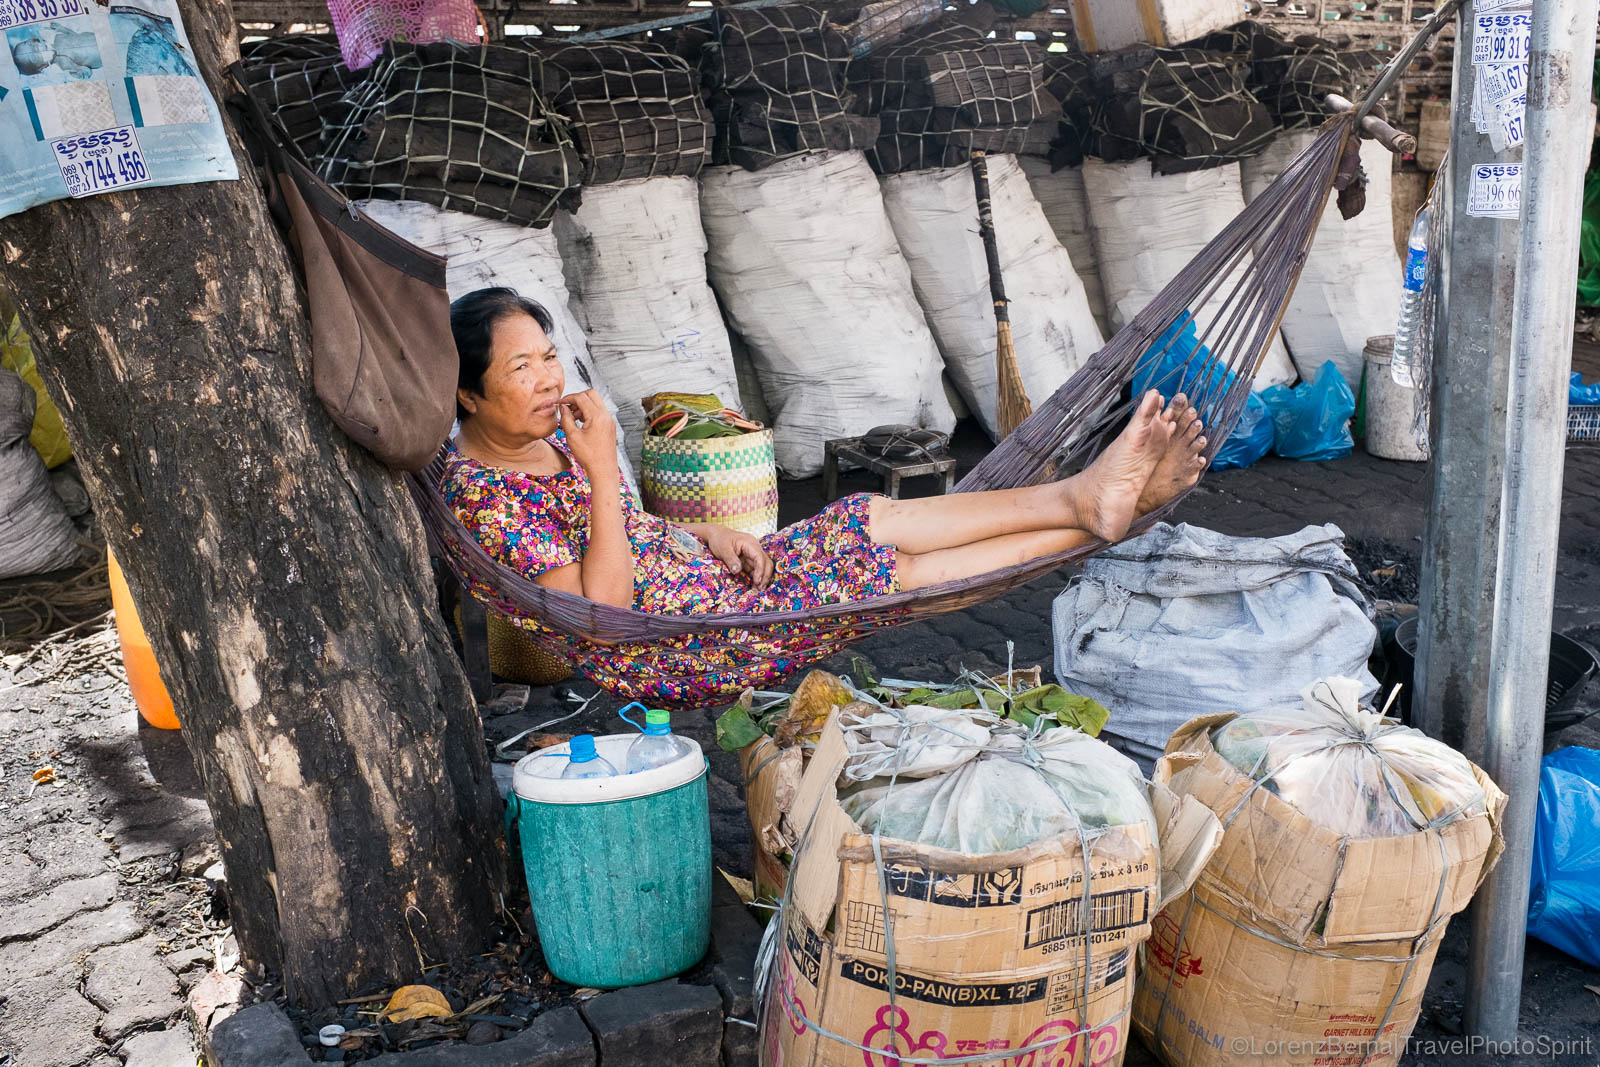 Wood-coal seller in hammock, Cambodia